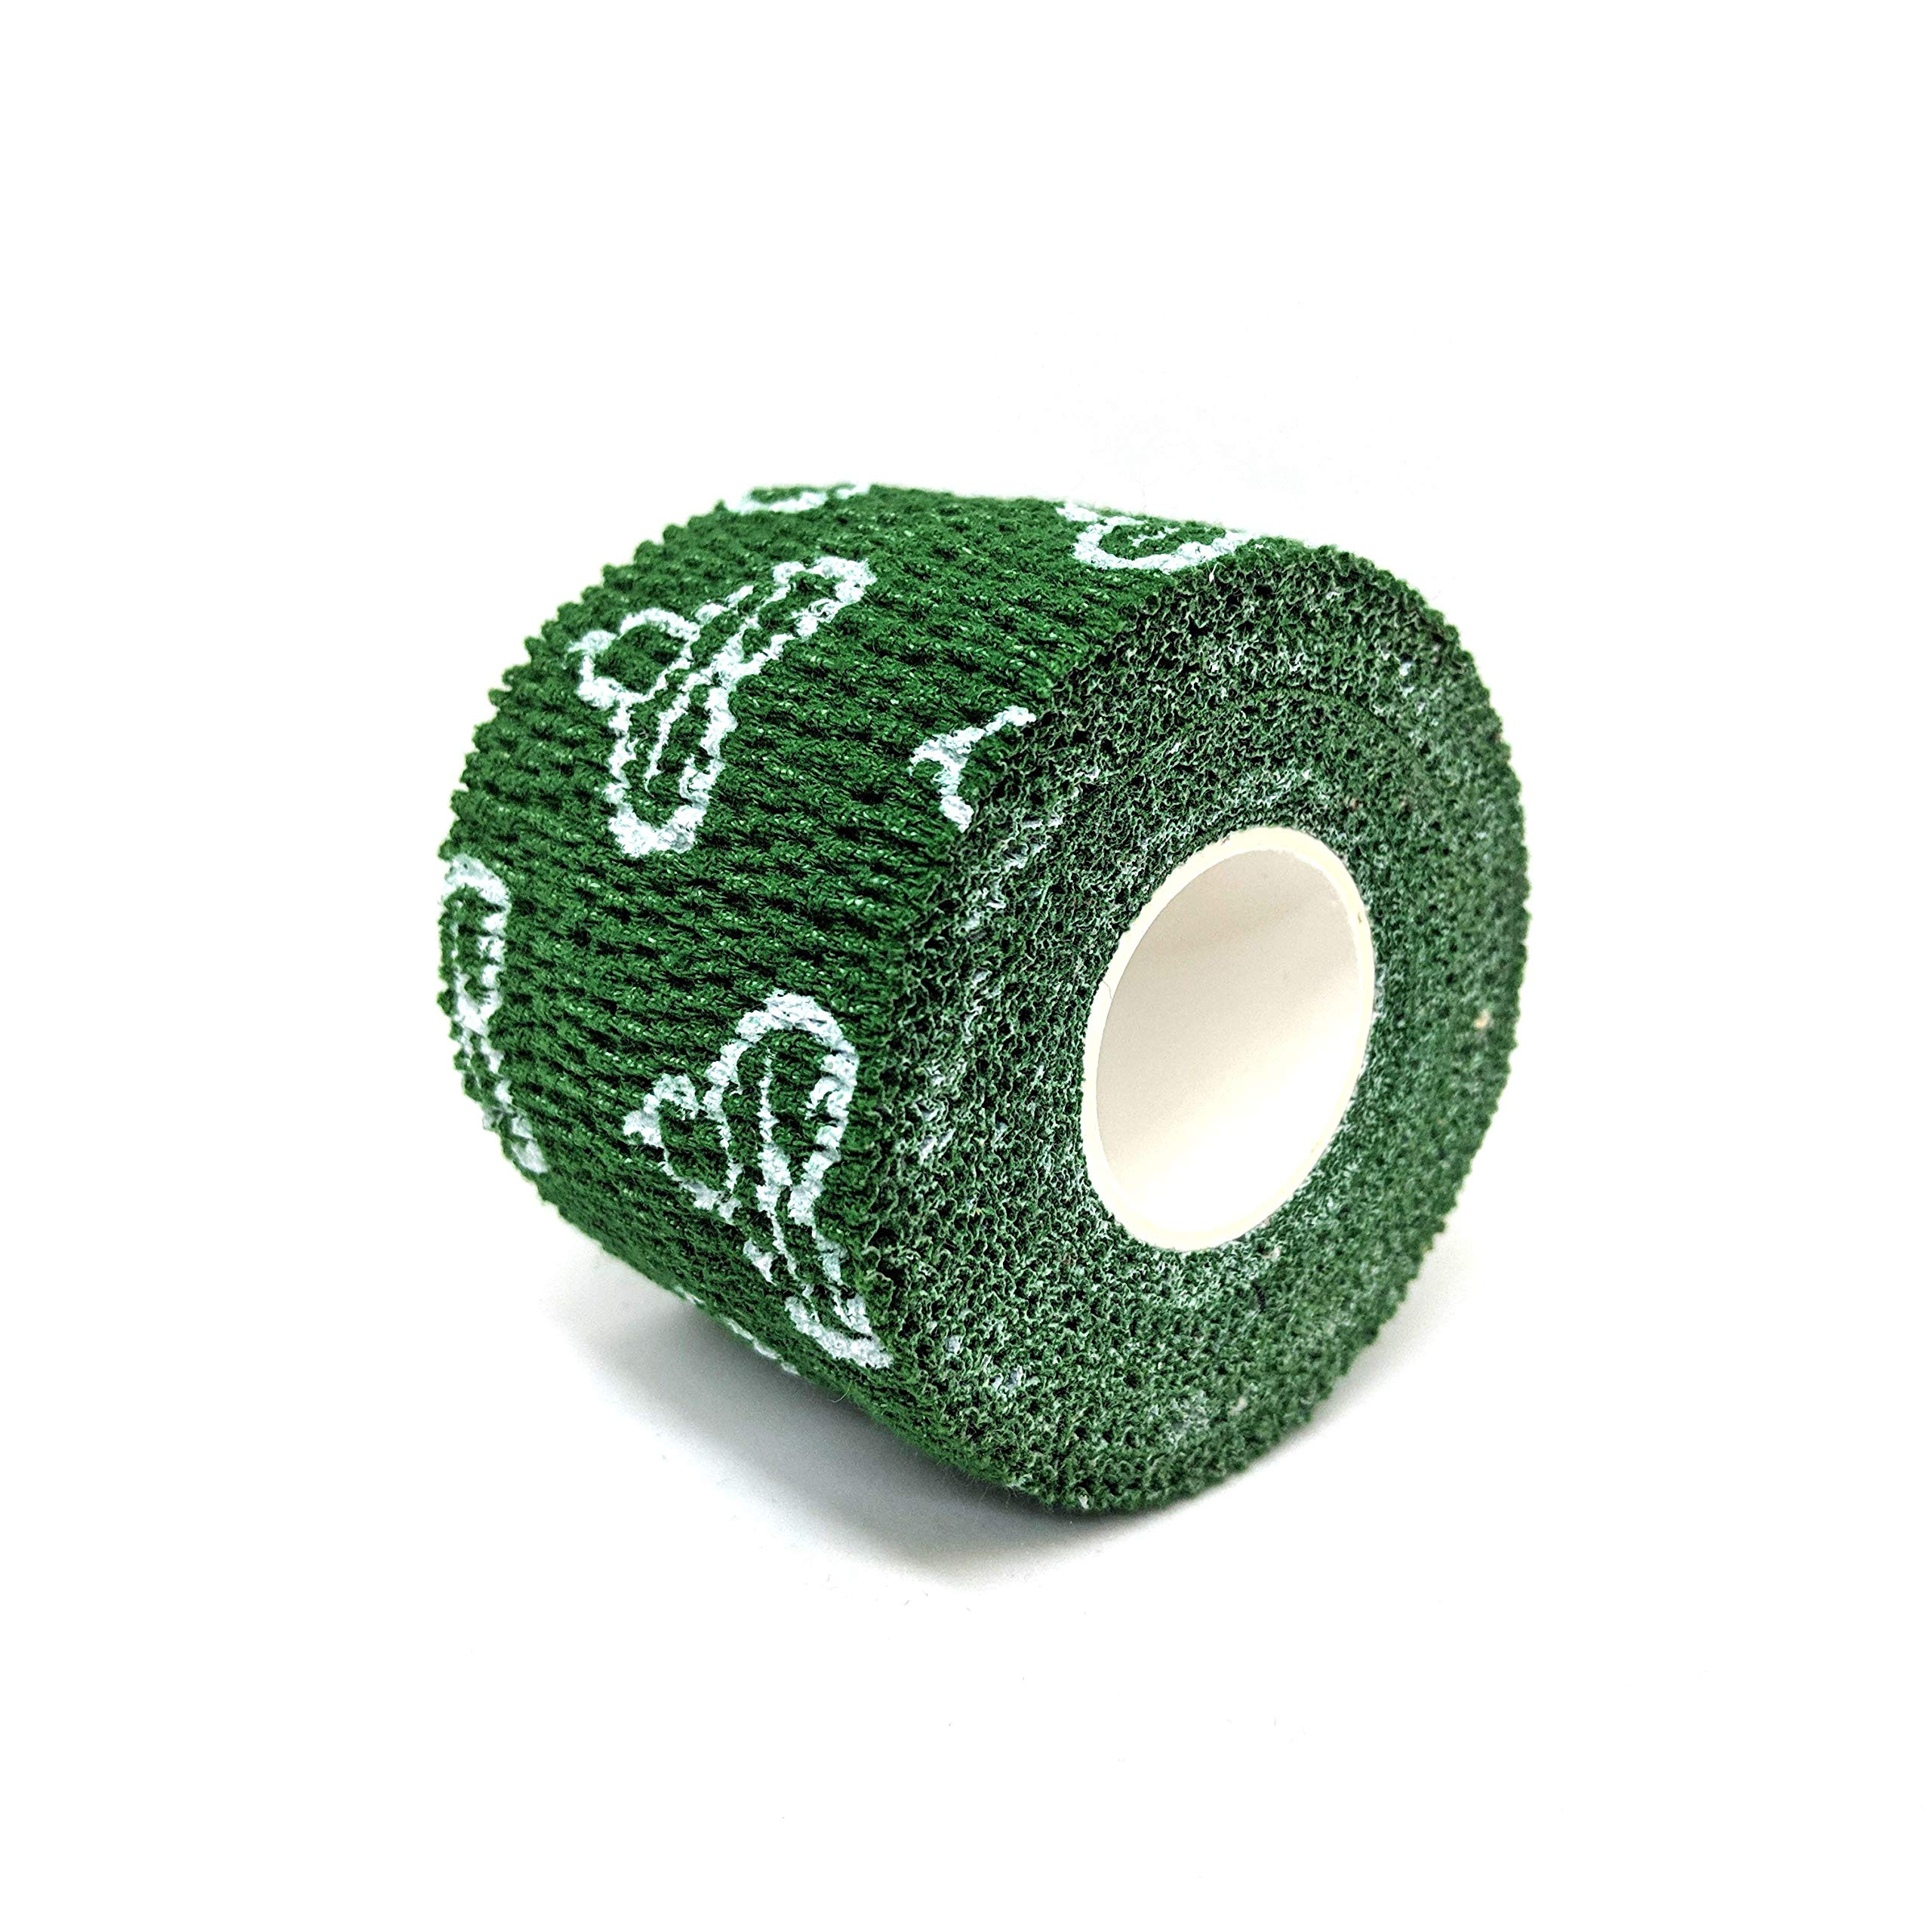 Liftgenie Thumb Adhesive Weightlifting Tape | Protects Thumbs When Lifting Weights & Prevents Knurling | Stretchy Adhesive Athletic Hook Grip Tape for Weightlifters (Green, 3 Rolls) by Liftgenie (Image #2)